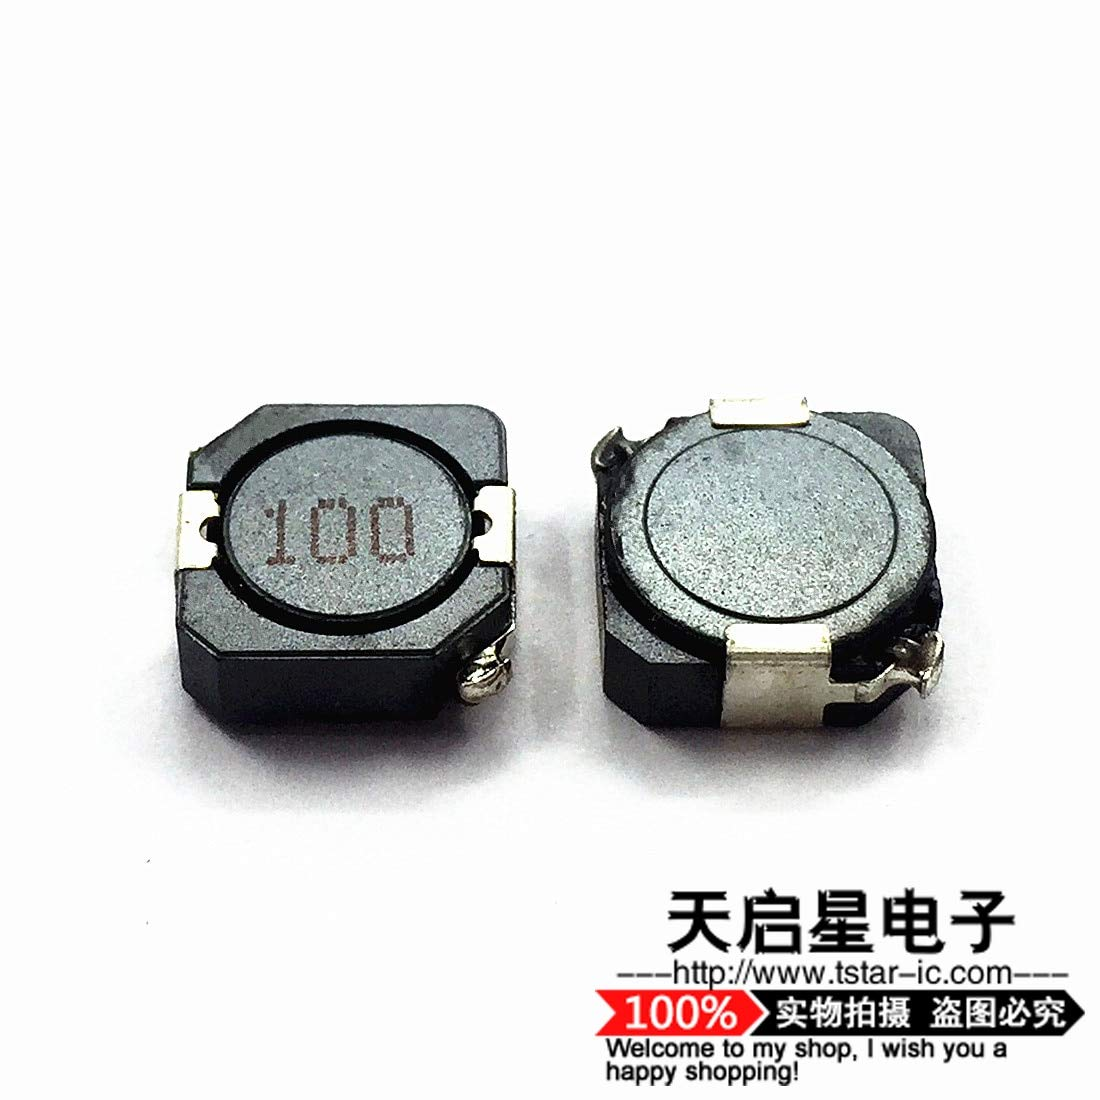 Maslin 20pcs//SMD Shielding inductors CDRH104R 10UH 10x10x4mm 4.4A MS104R Power inductors